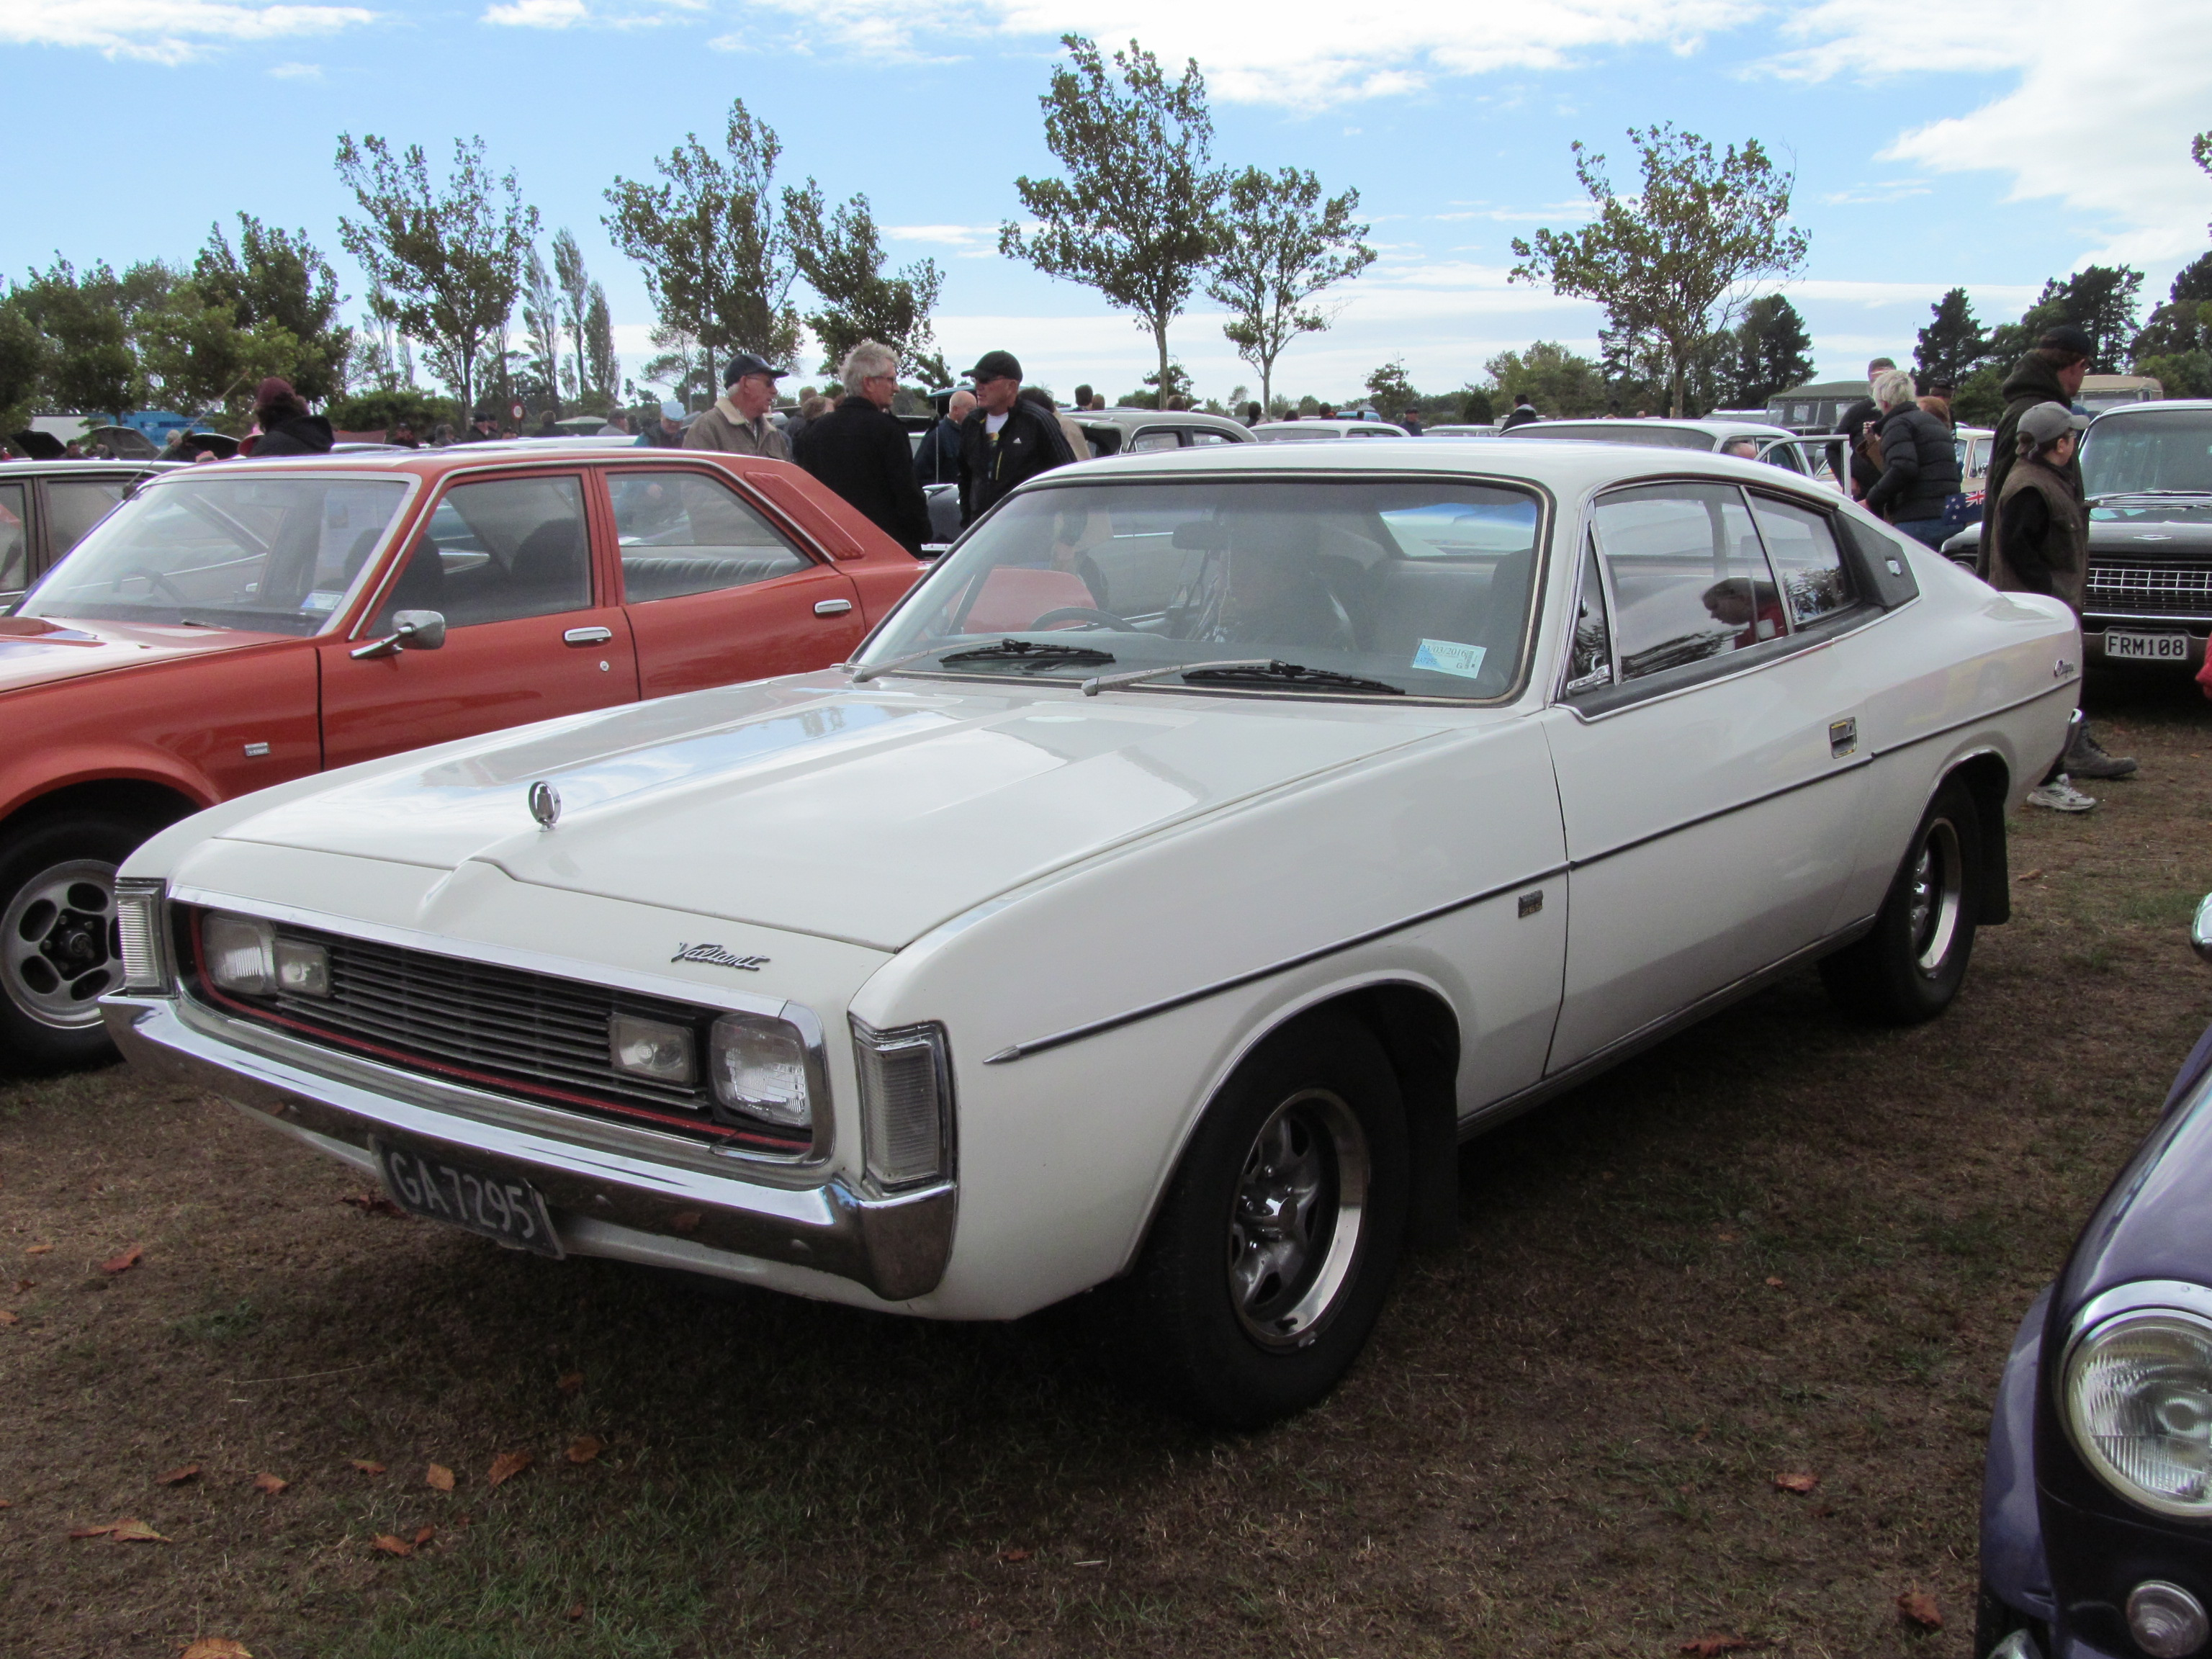 1972_Chrysler_Valiant_Charger_770_%28162